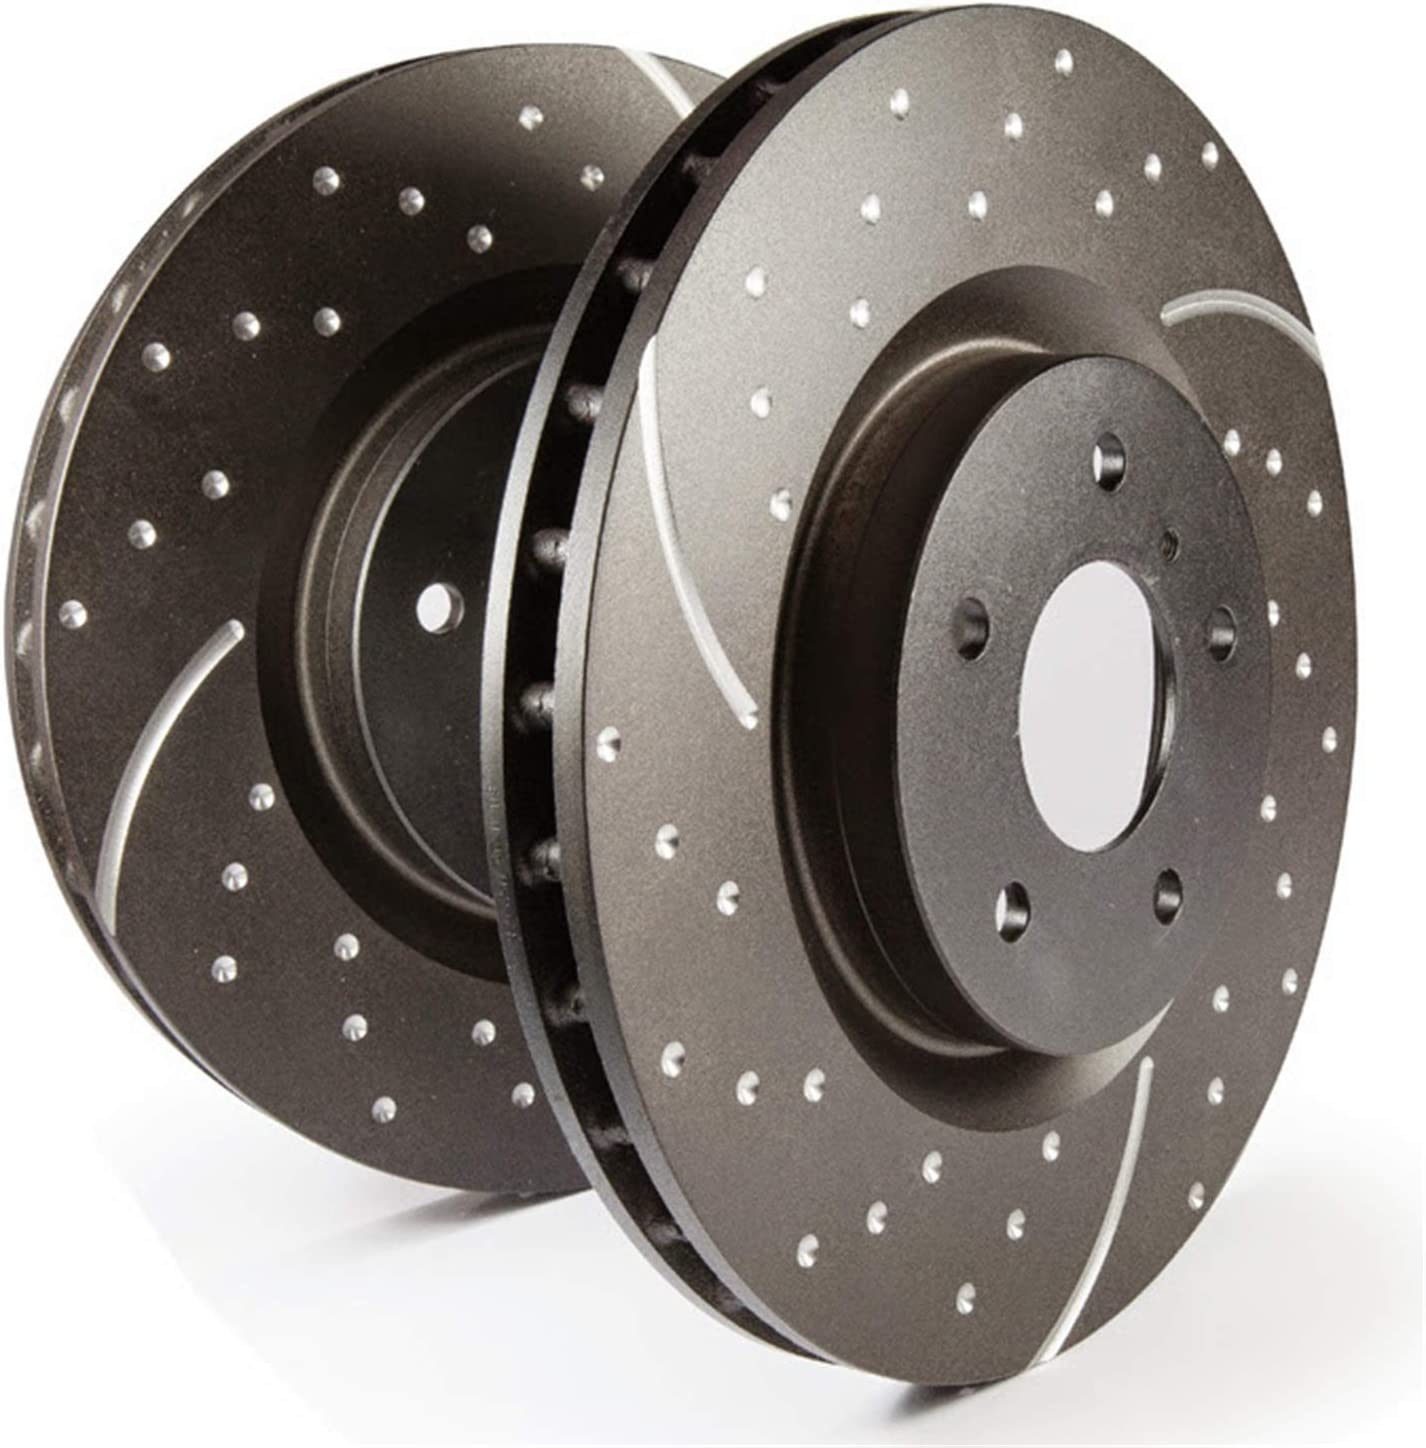 EBC Brakes GD7672 GD Sport Slotted and Dimpled High material Translated Rotor